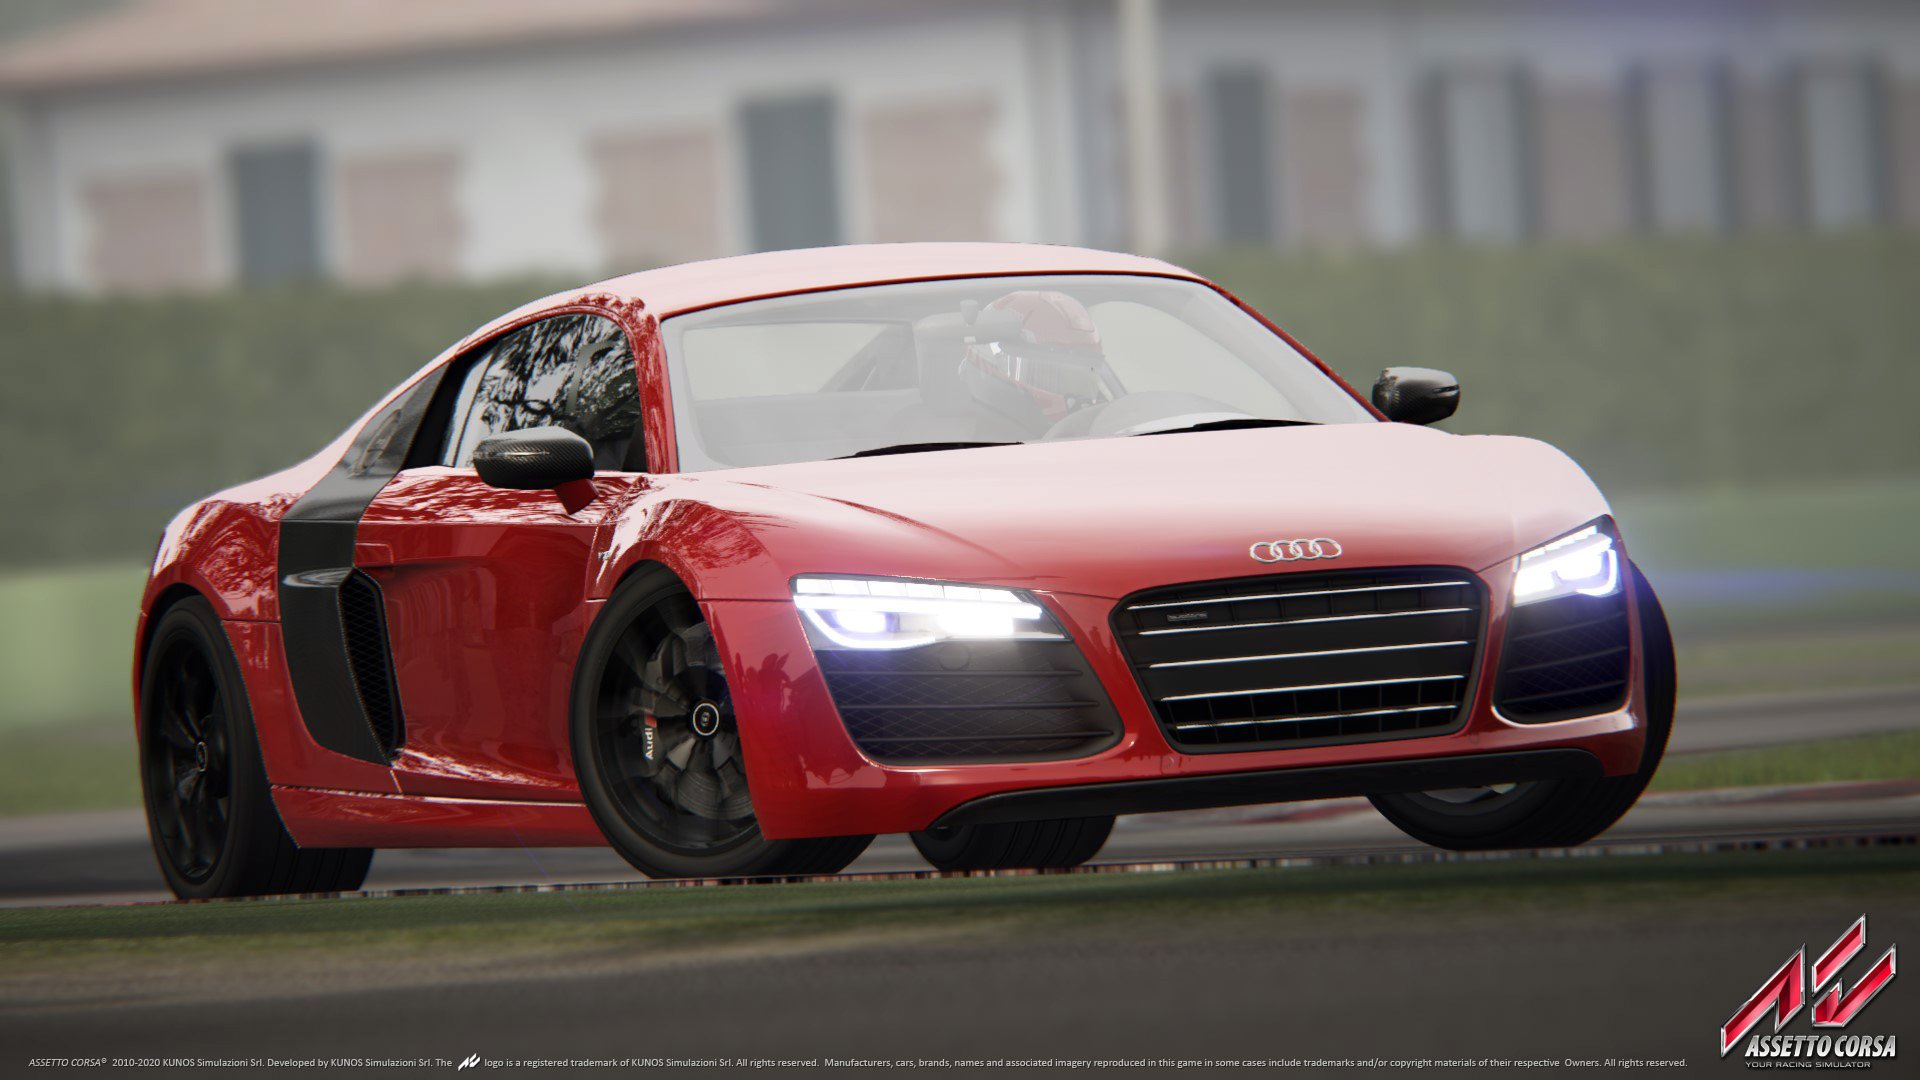 Assetto Corsa v1.3.5 Out Now